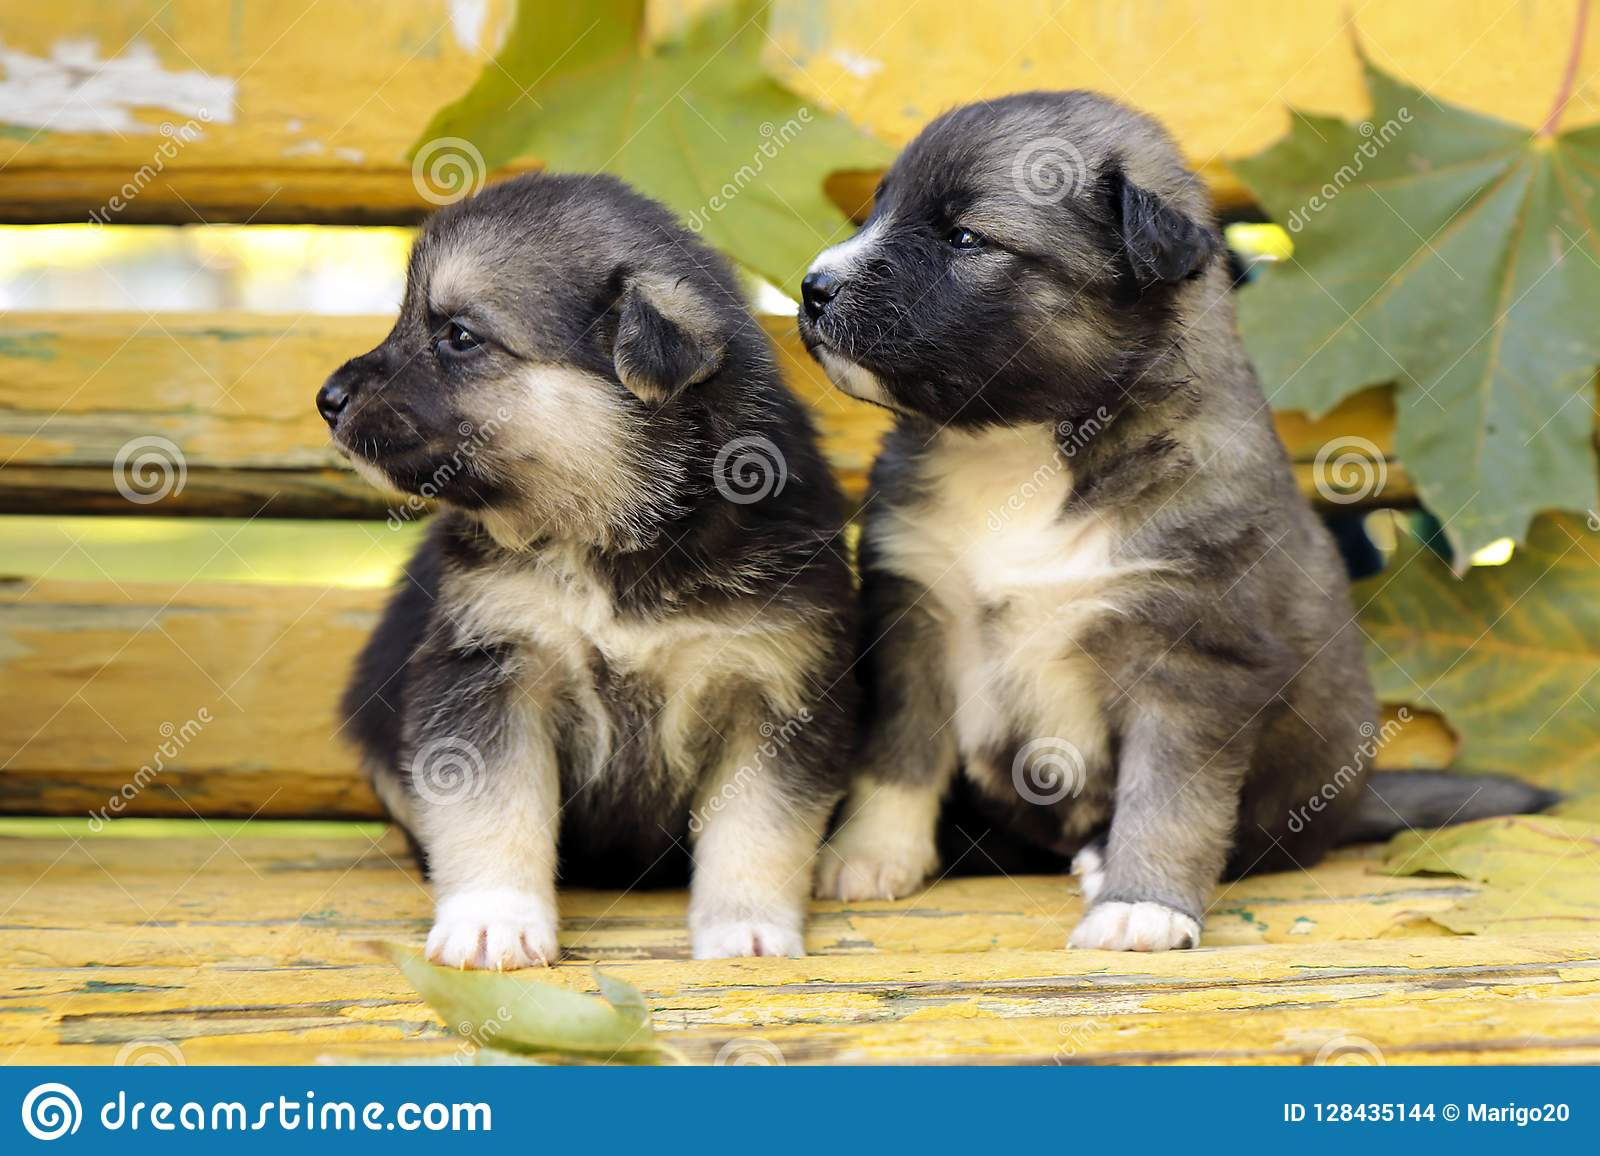 A Diverse Group Of Puppies Of Breed Of The Husky Stock Photo Image